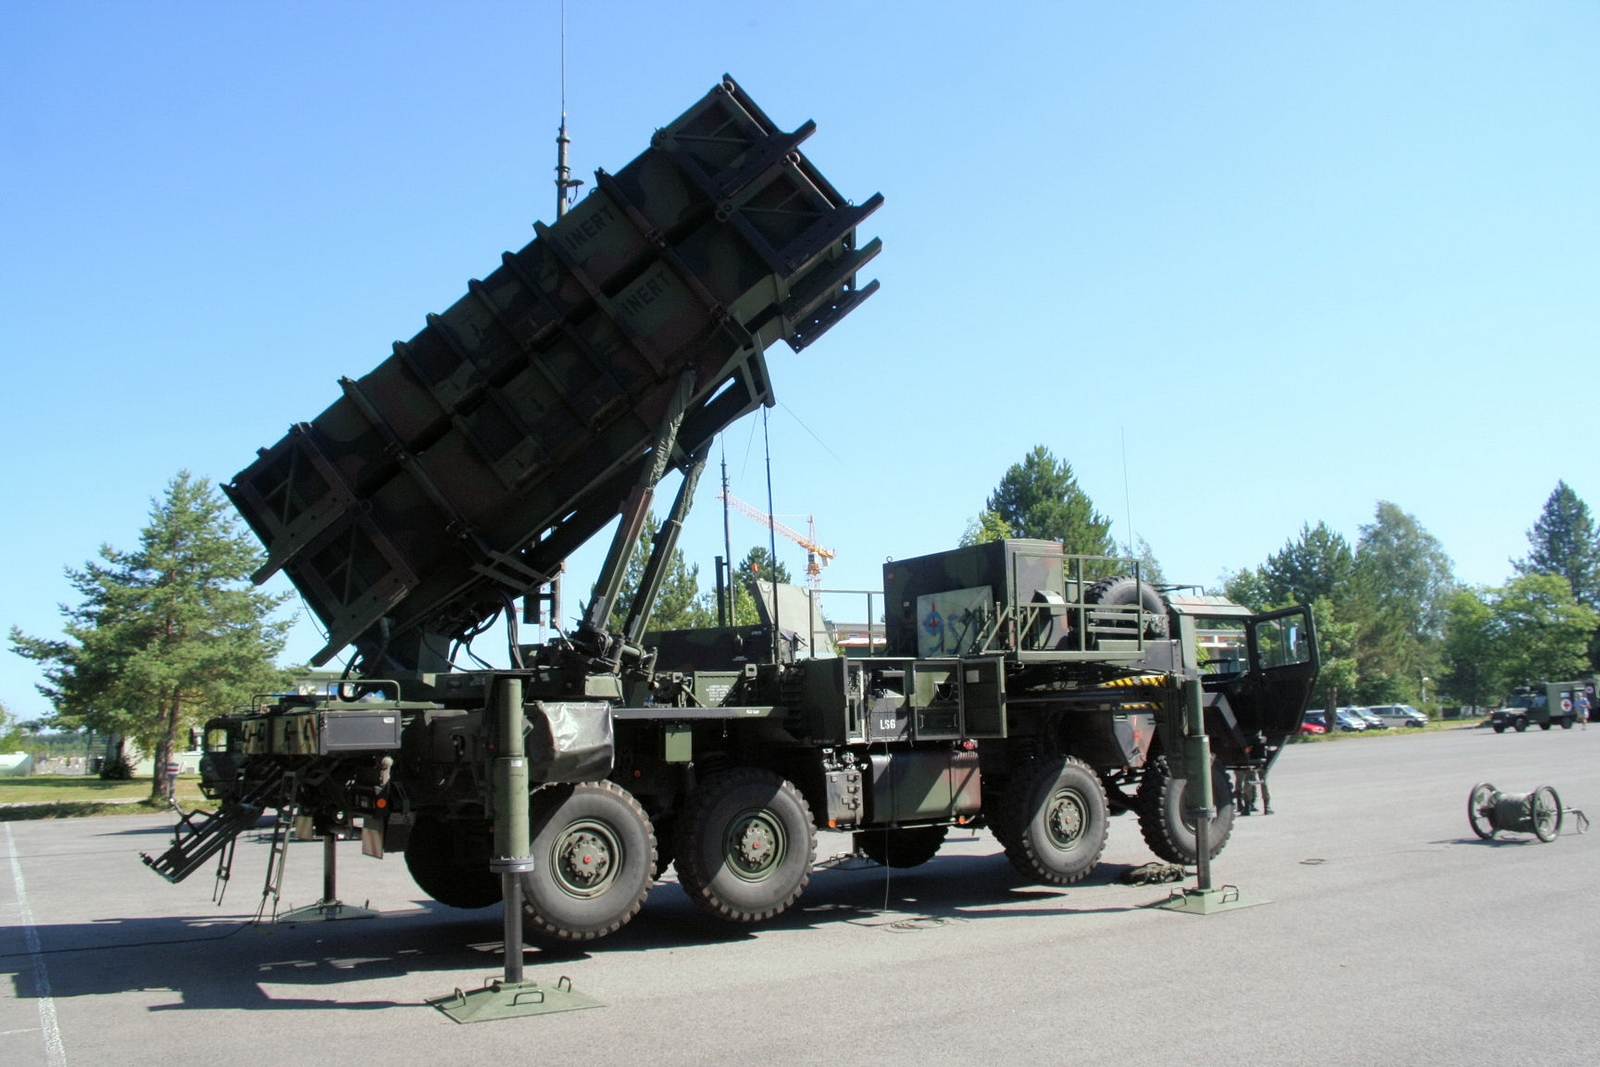 MIM-104 Patriot - Walk Around